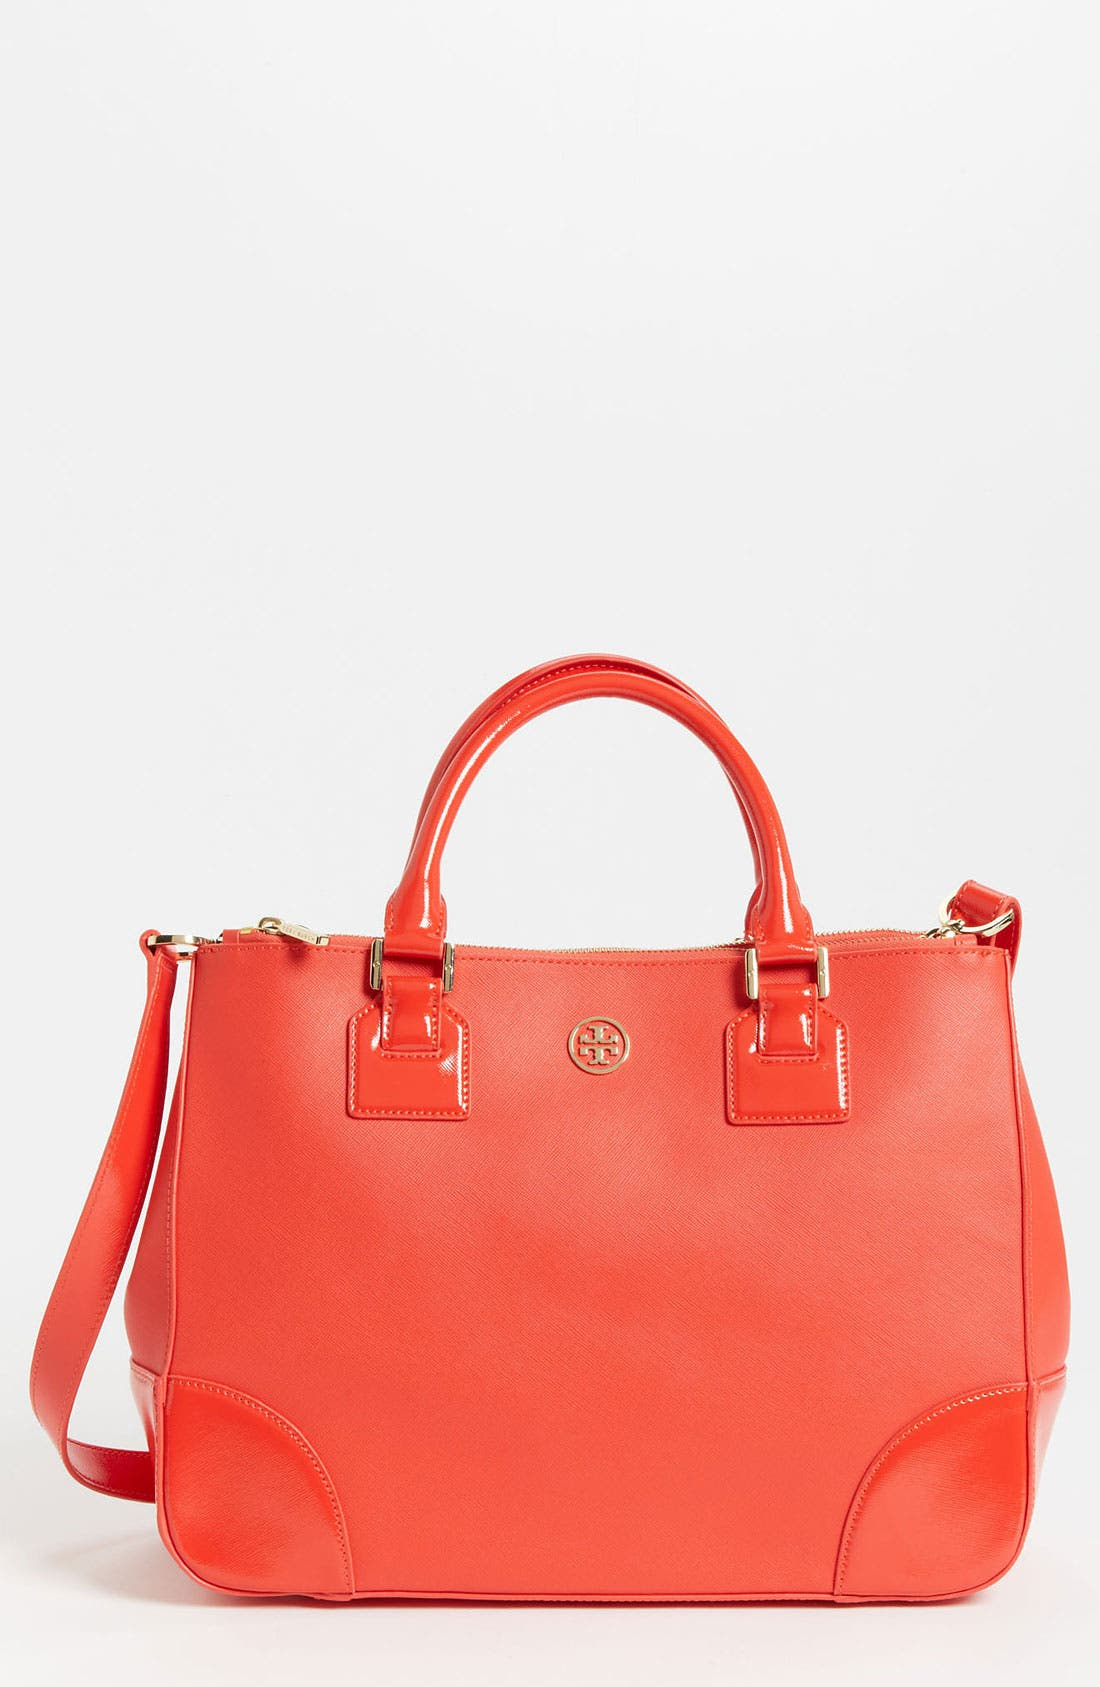 Alternate Image 1 Selected - Tory Burch 'Robinson' Double Zip Leather Tote